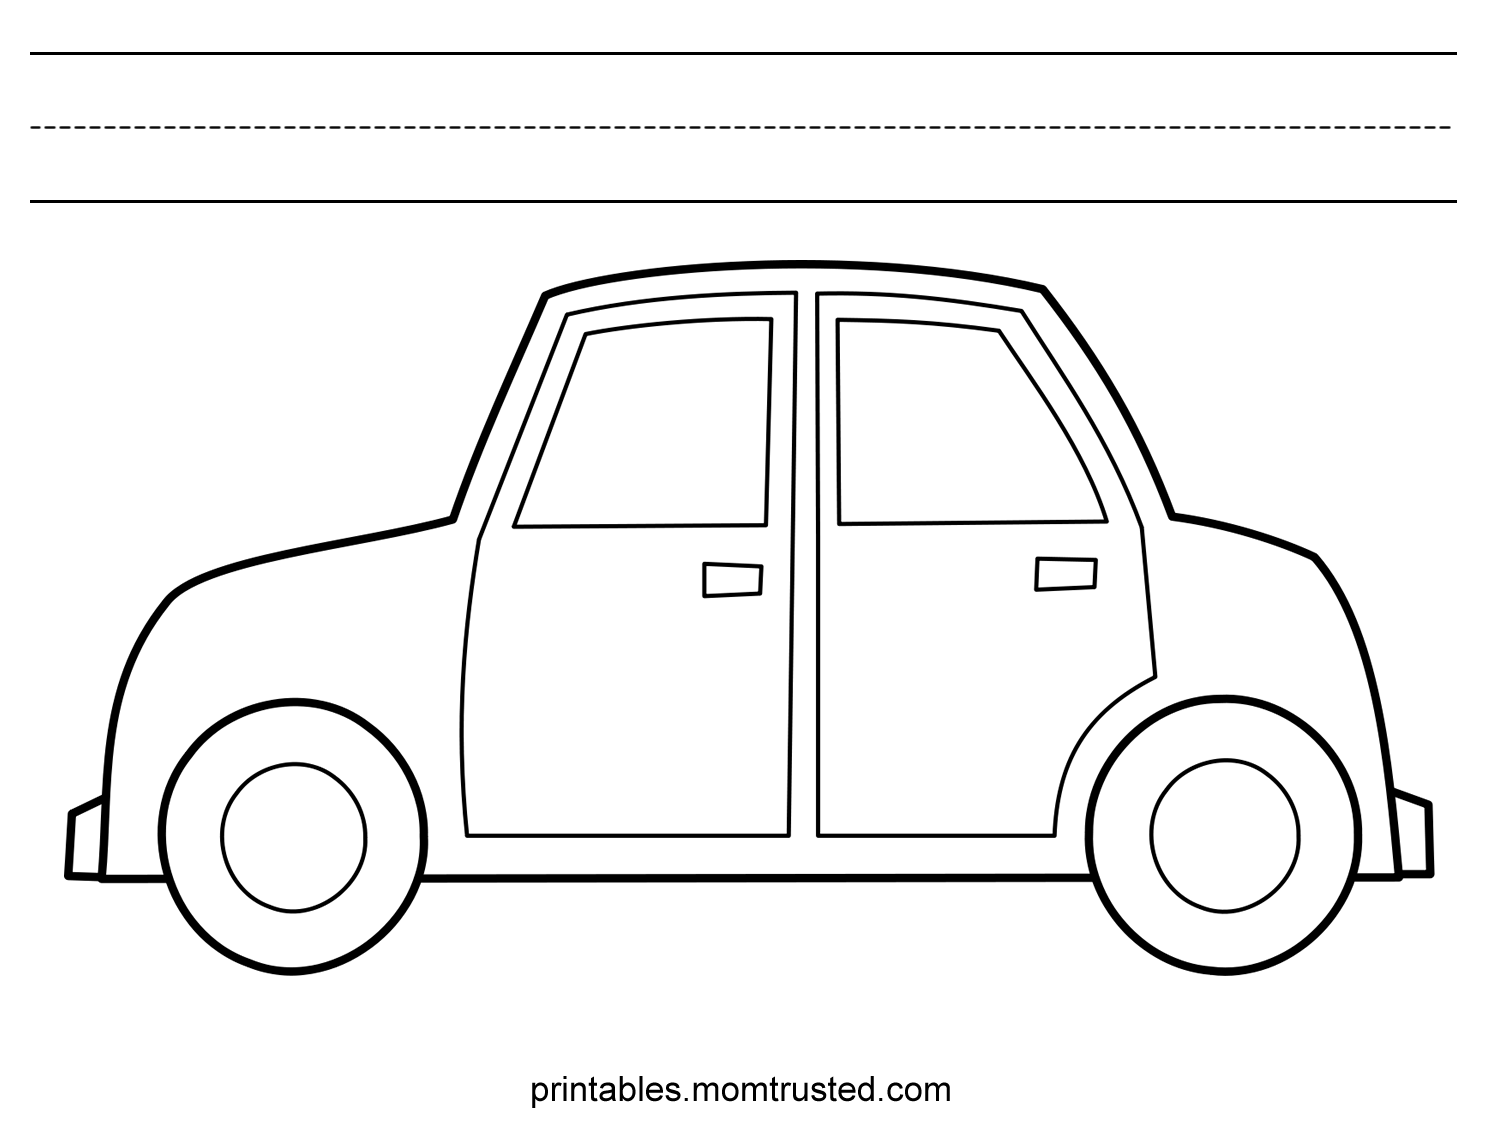 Car Category - Preschool Activities and PrintablesPreschool ...